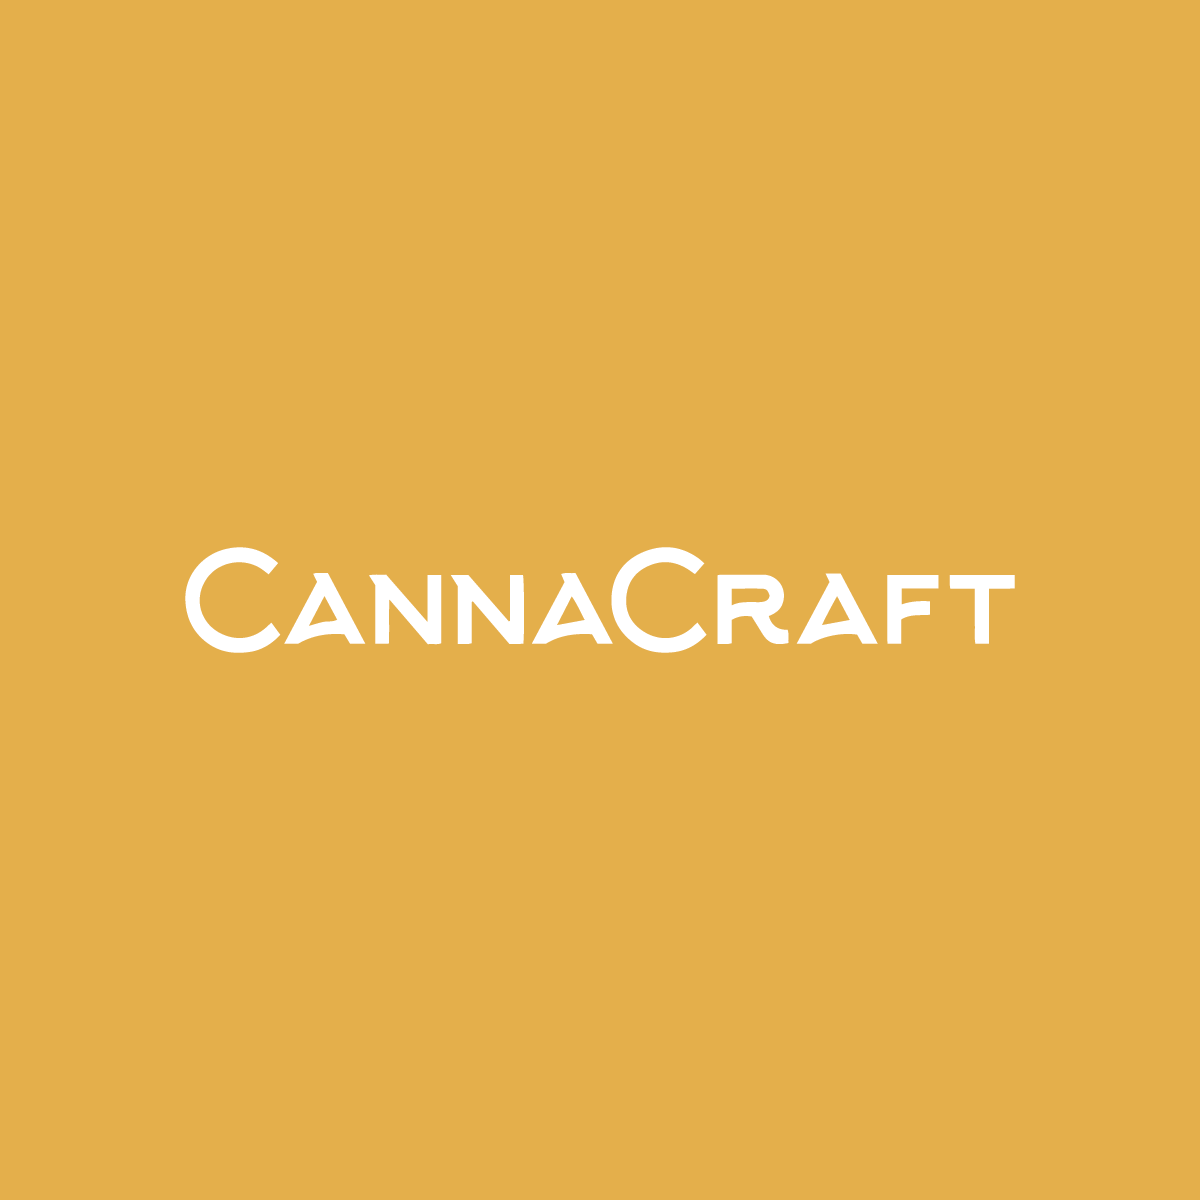 Cannabis producer and distributor CannaCraft Logo